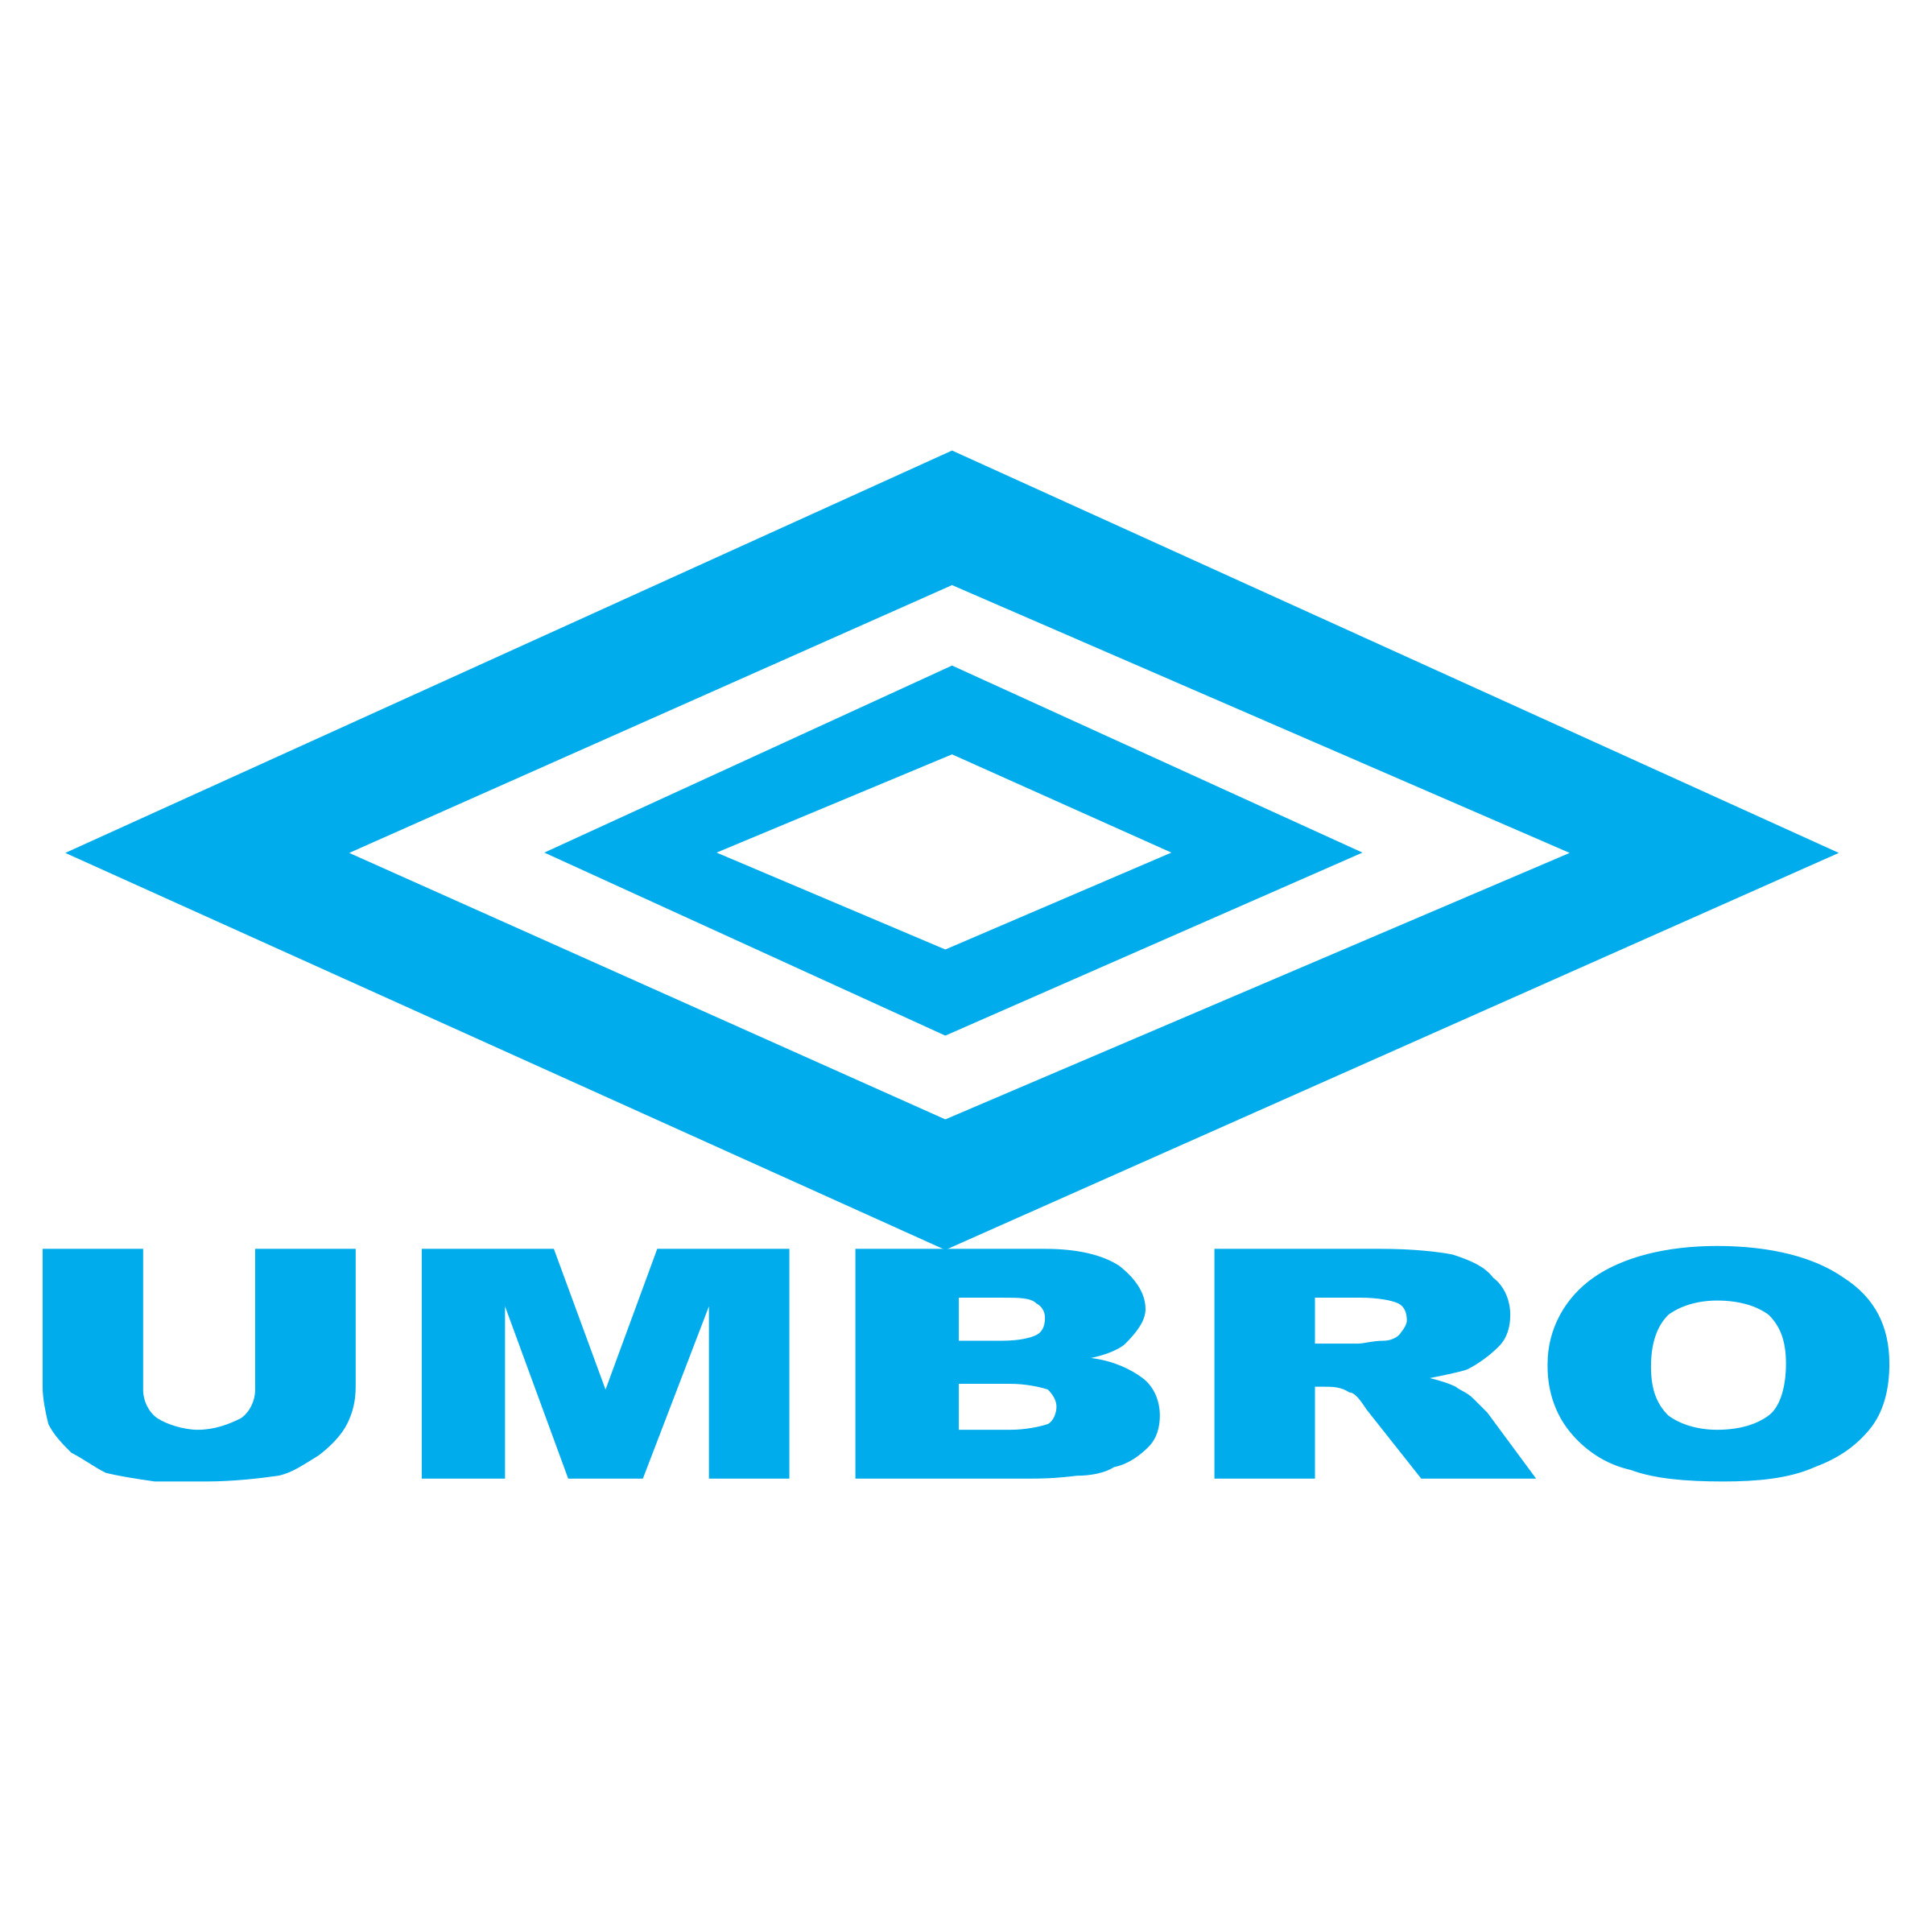 logo umbro png real clipart and vector graphics